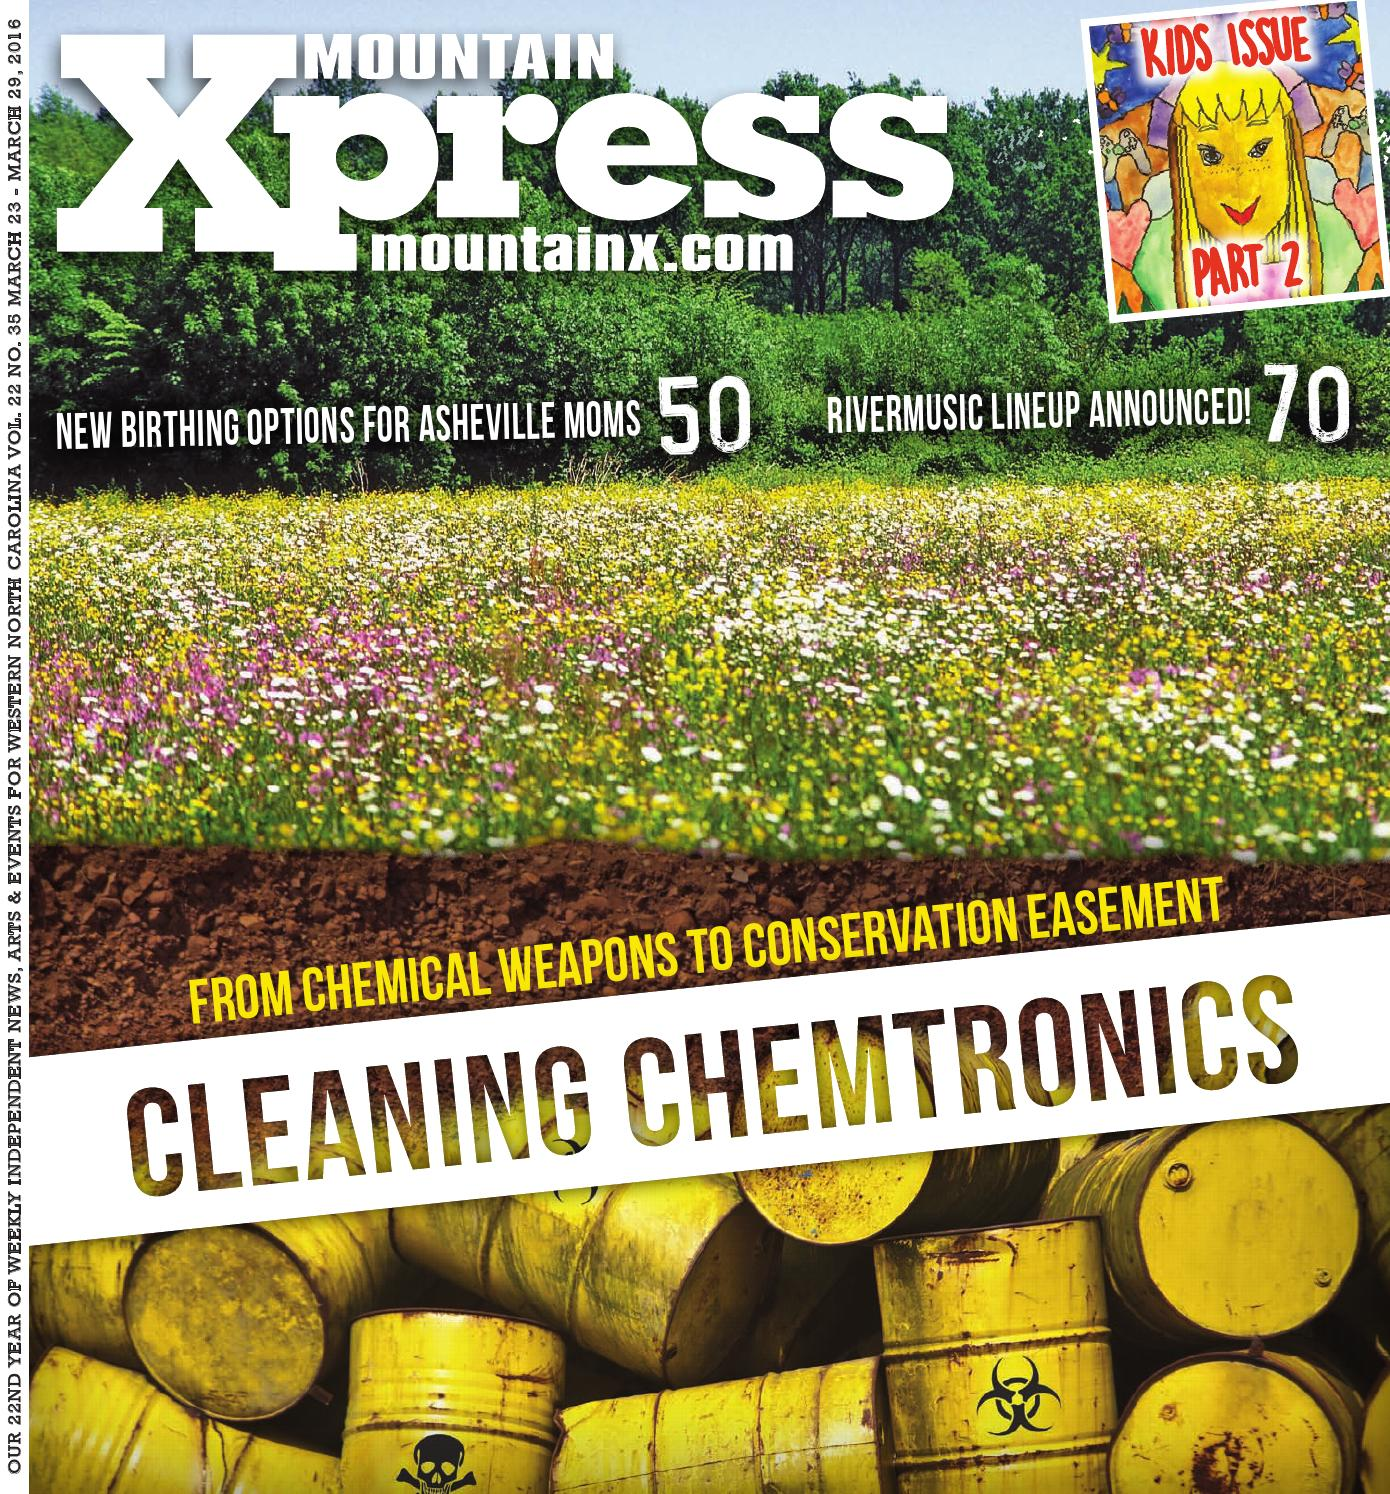 Mountain Xpress 03 23 16 by Mountain Xpress - issuu